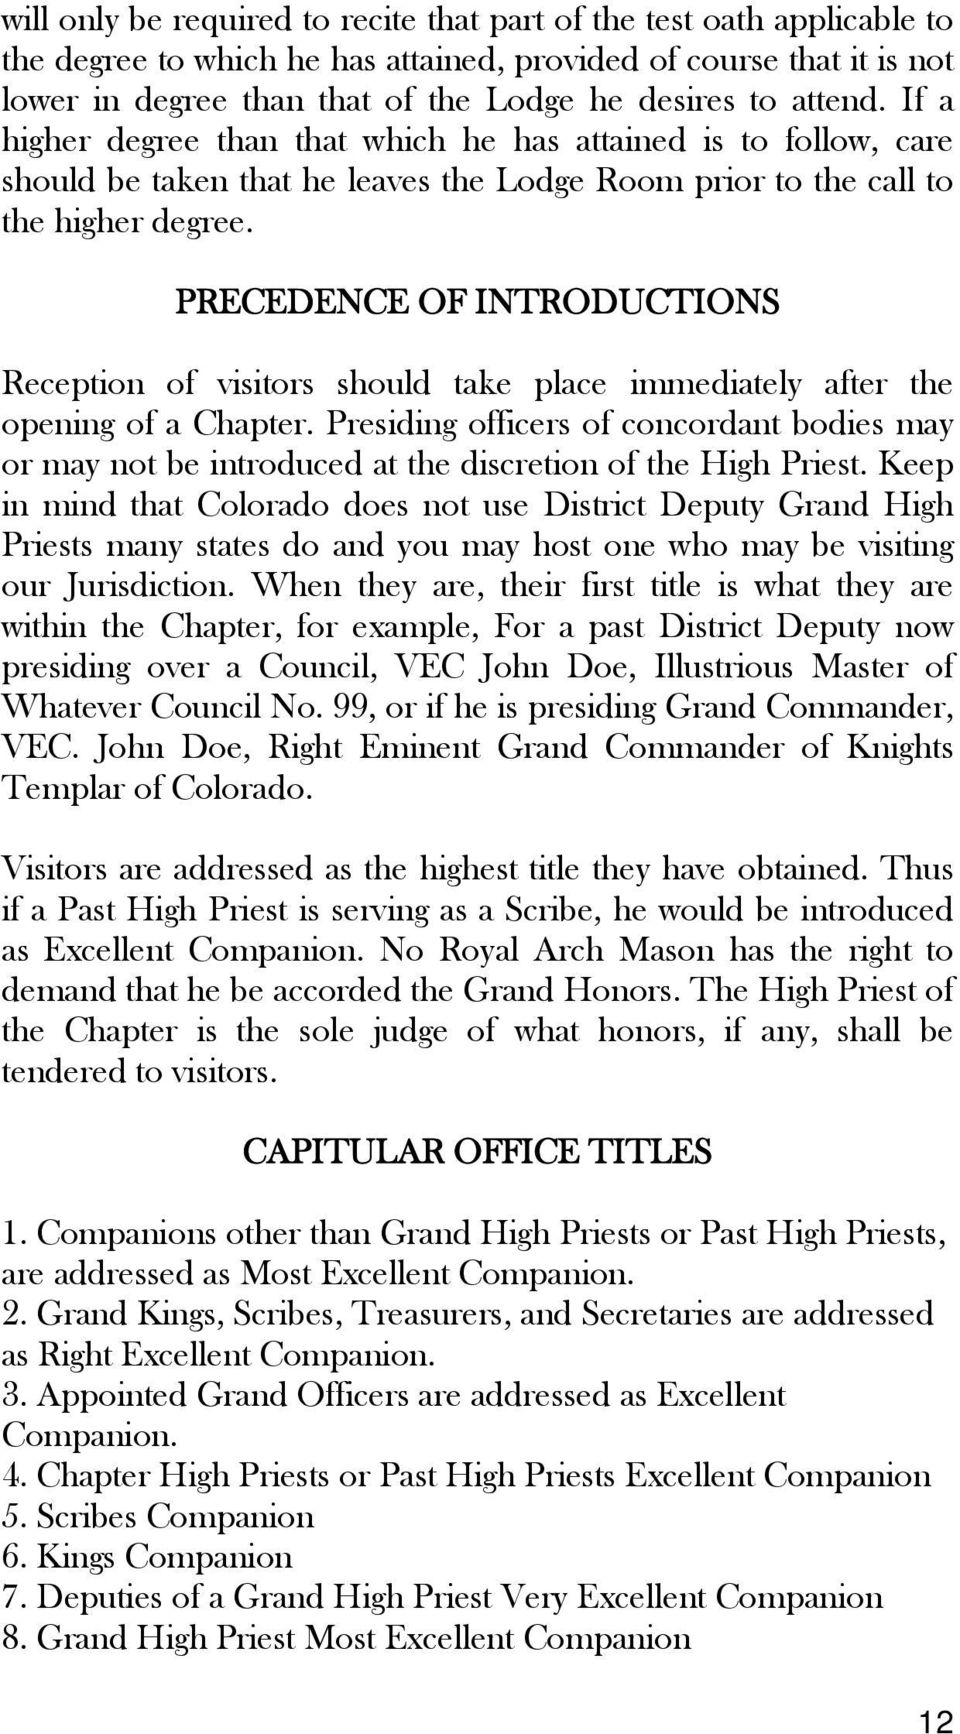 monitor and guide for royal arch masons pdf